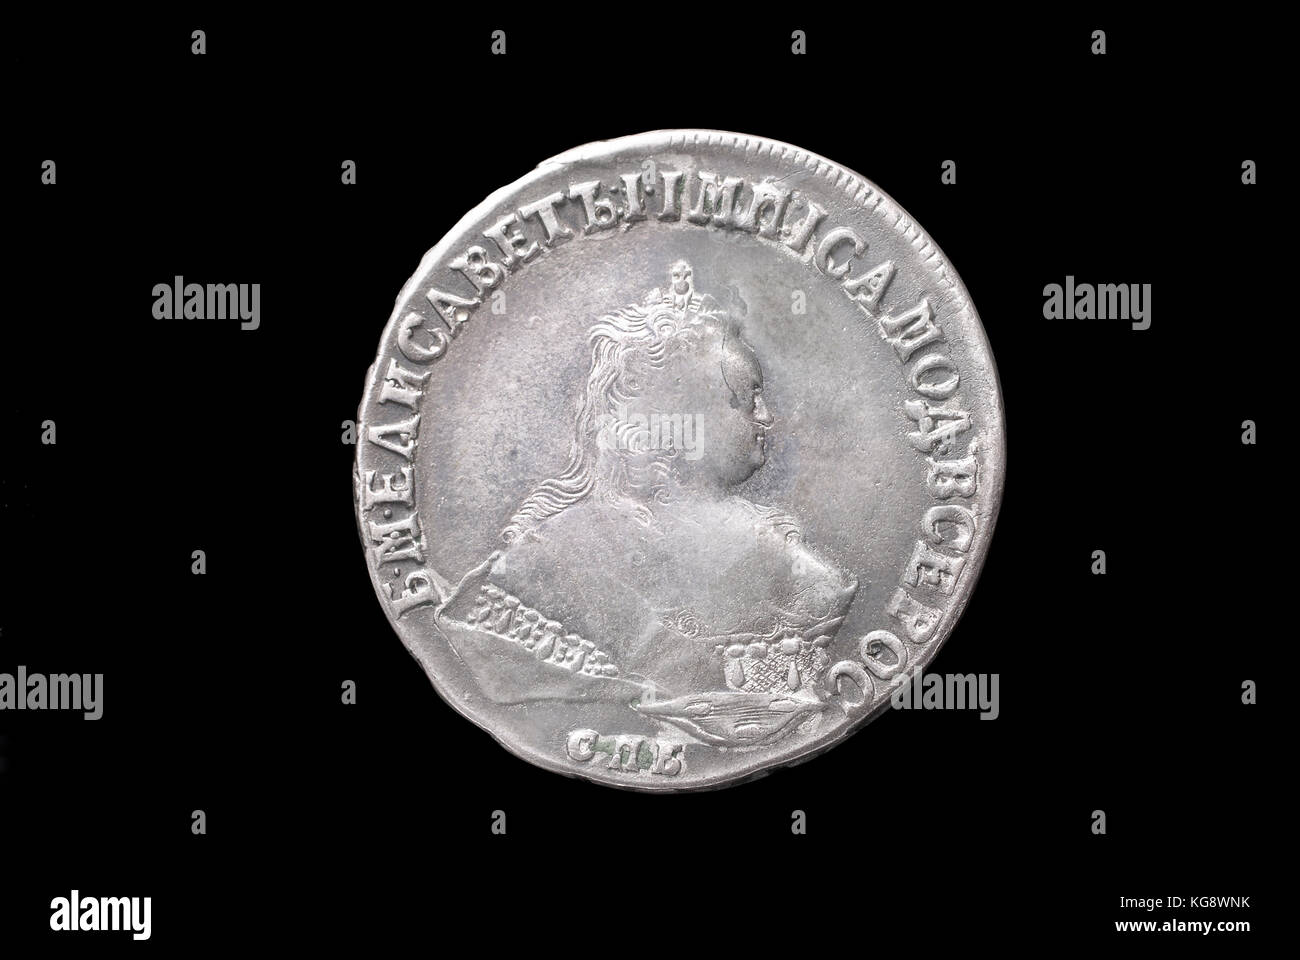 Russian ancient silver coin (empress Elizabeth II, 1 rouble, 1751). Obverse (of coin). - Stock Image